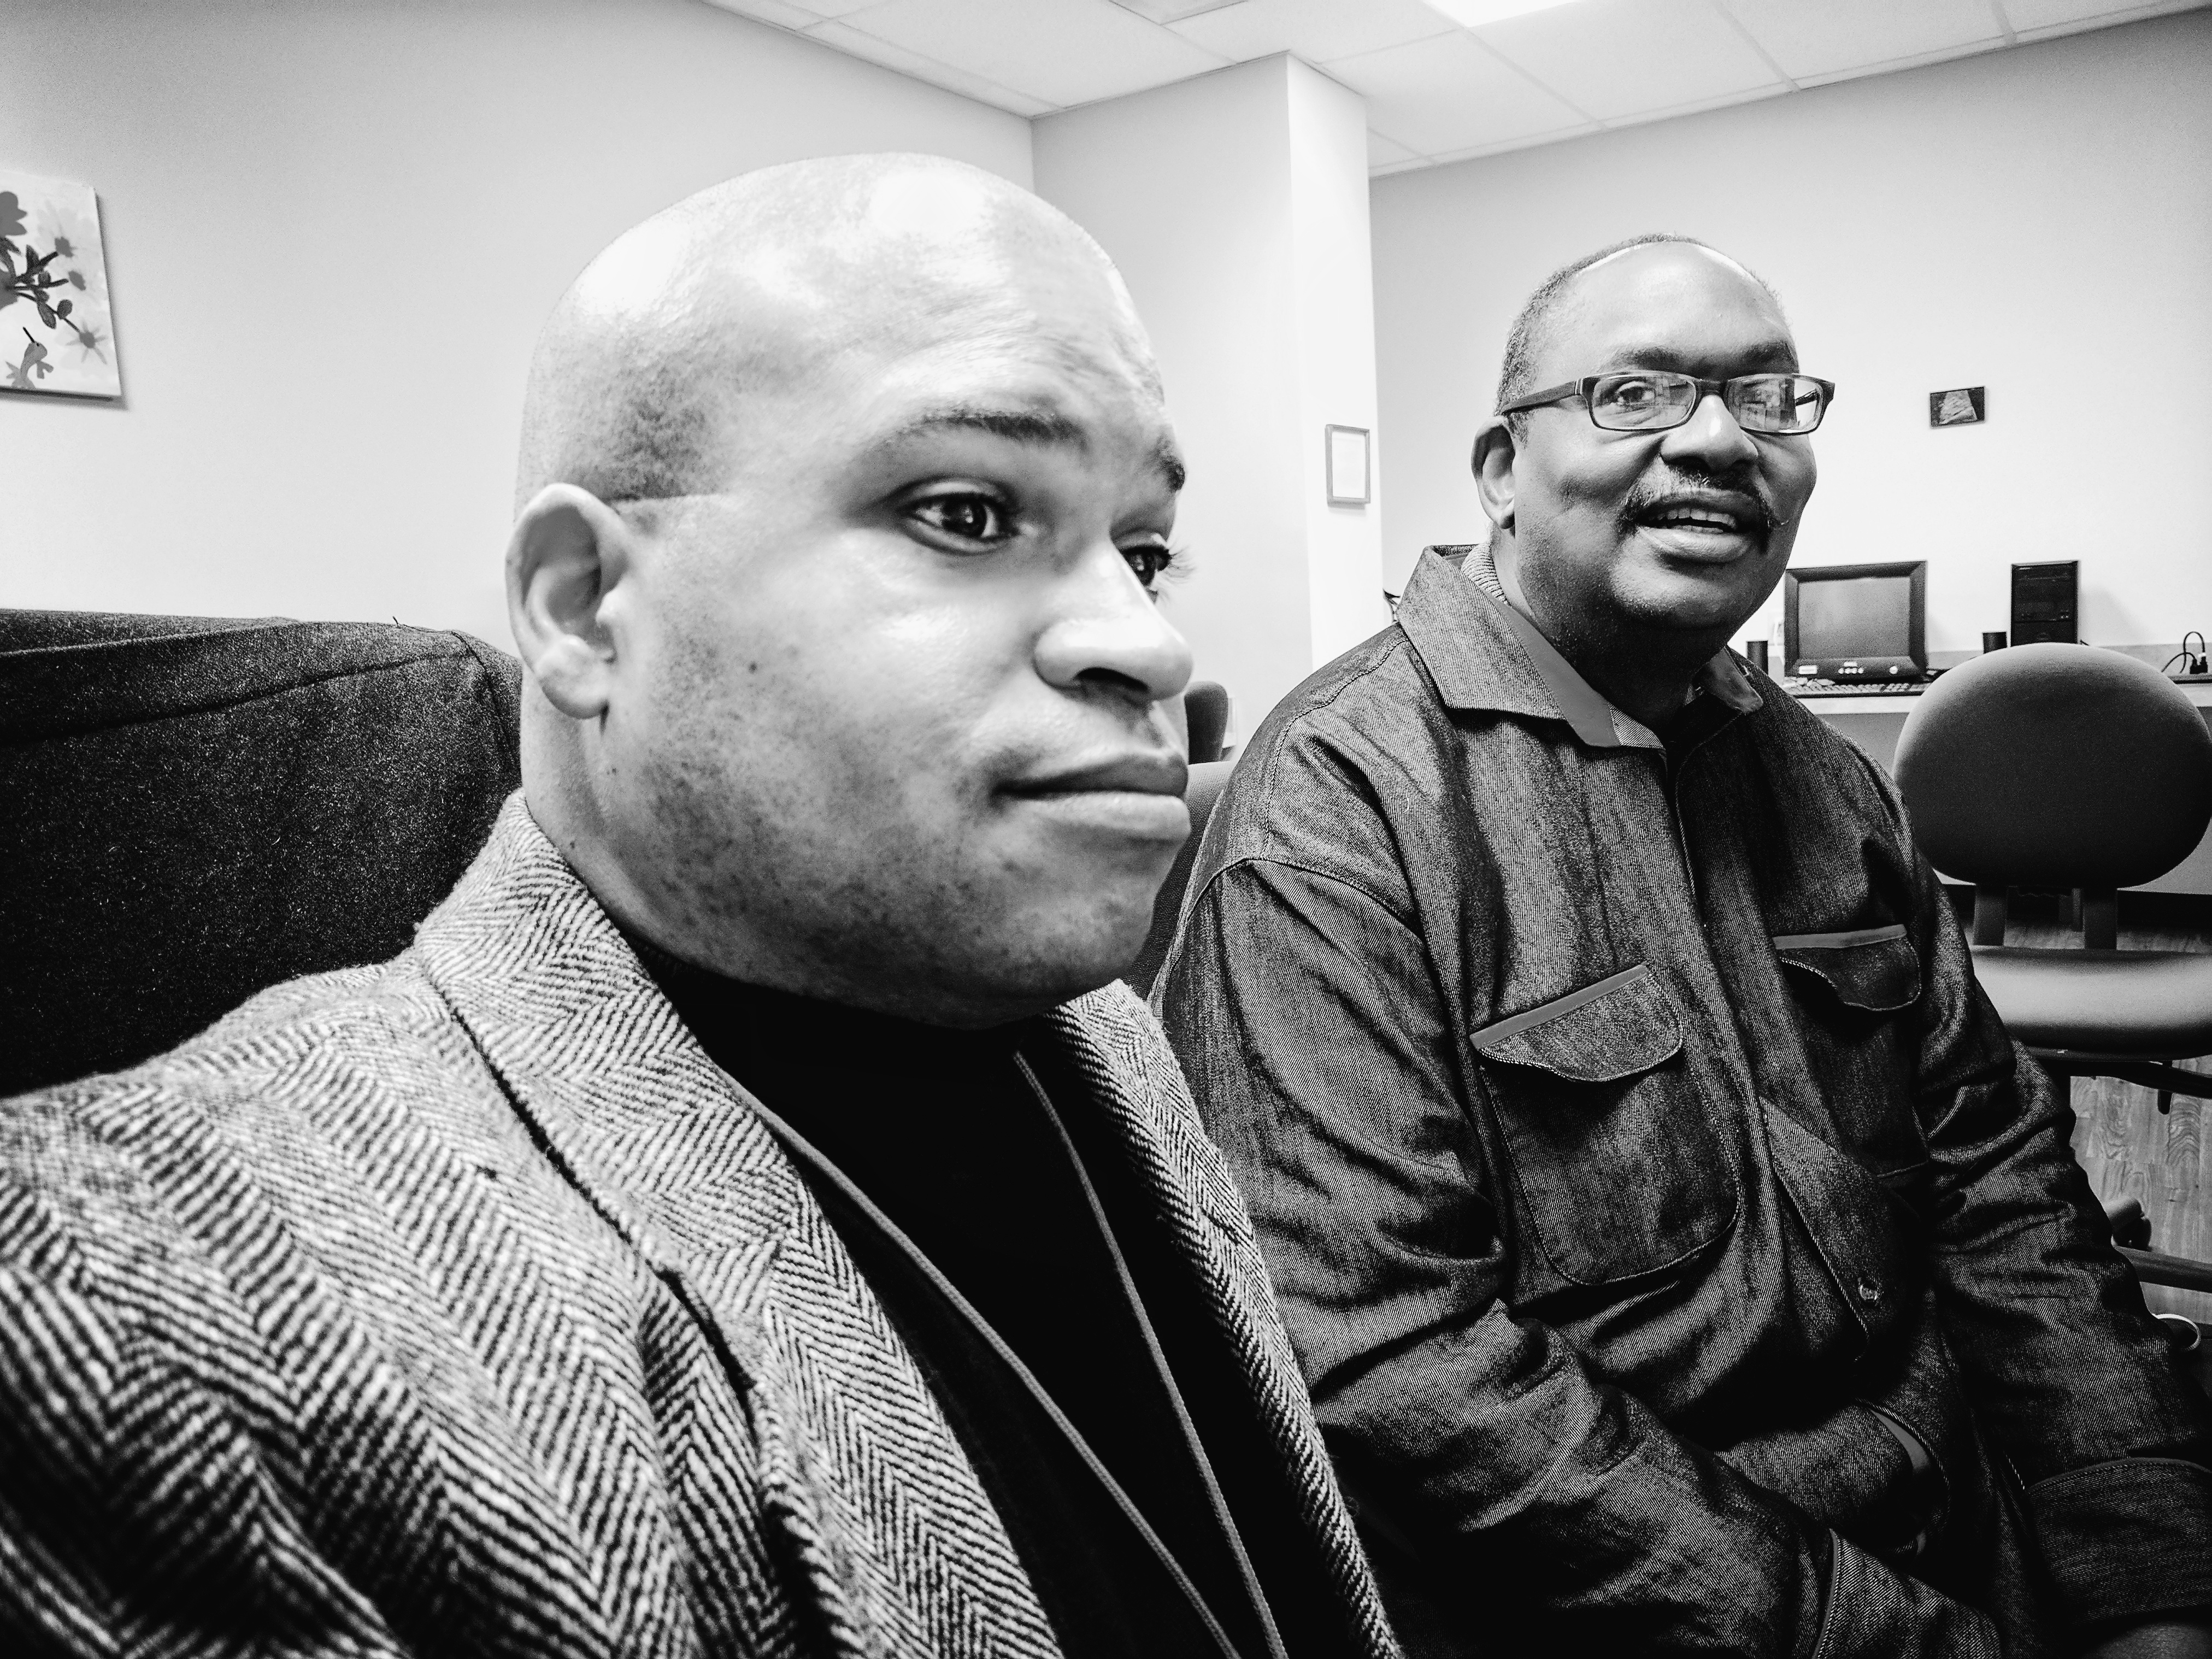 Dante Murray (left) shows the computer literacy skills he teaches clients to help improve employability.